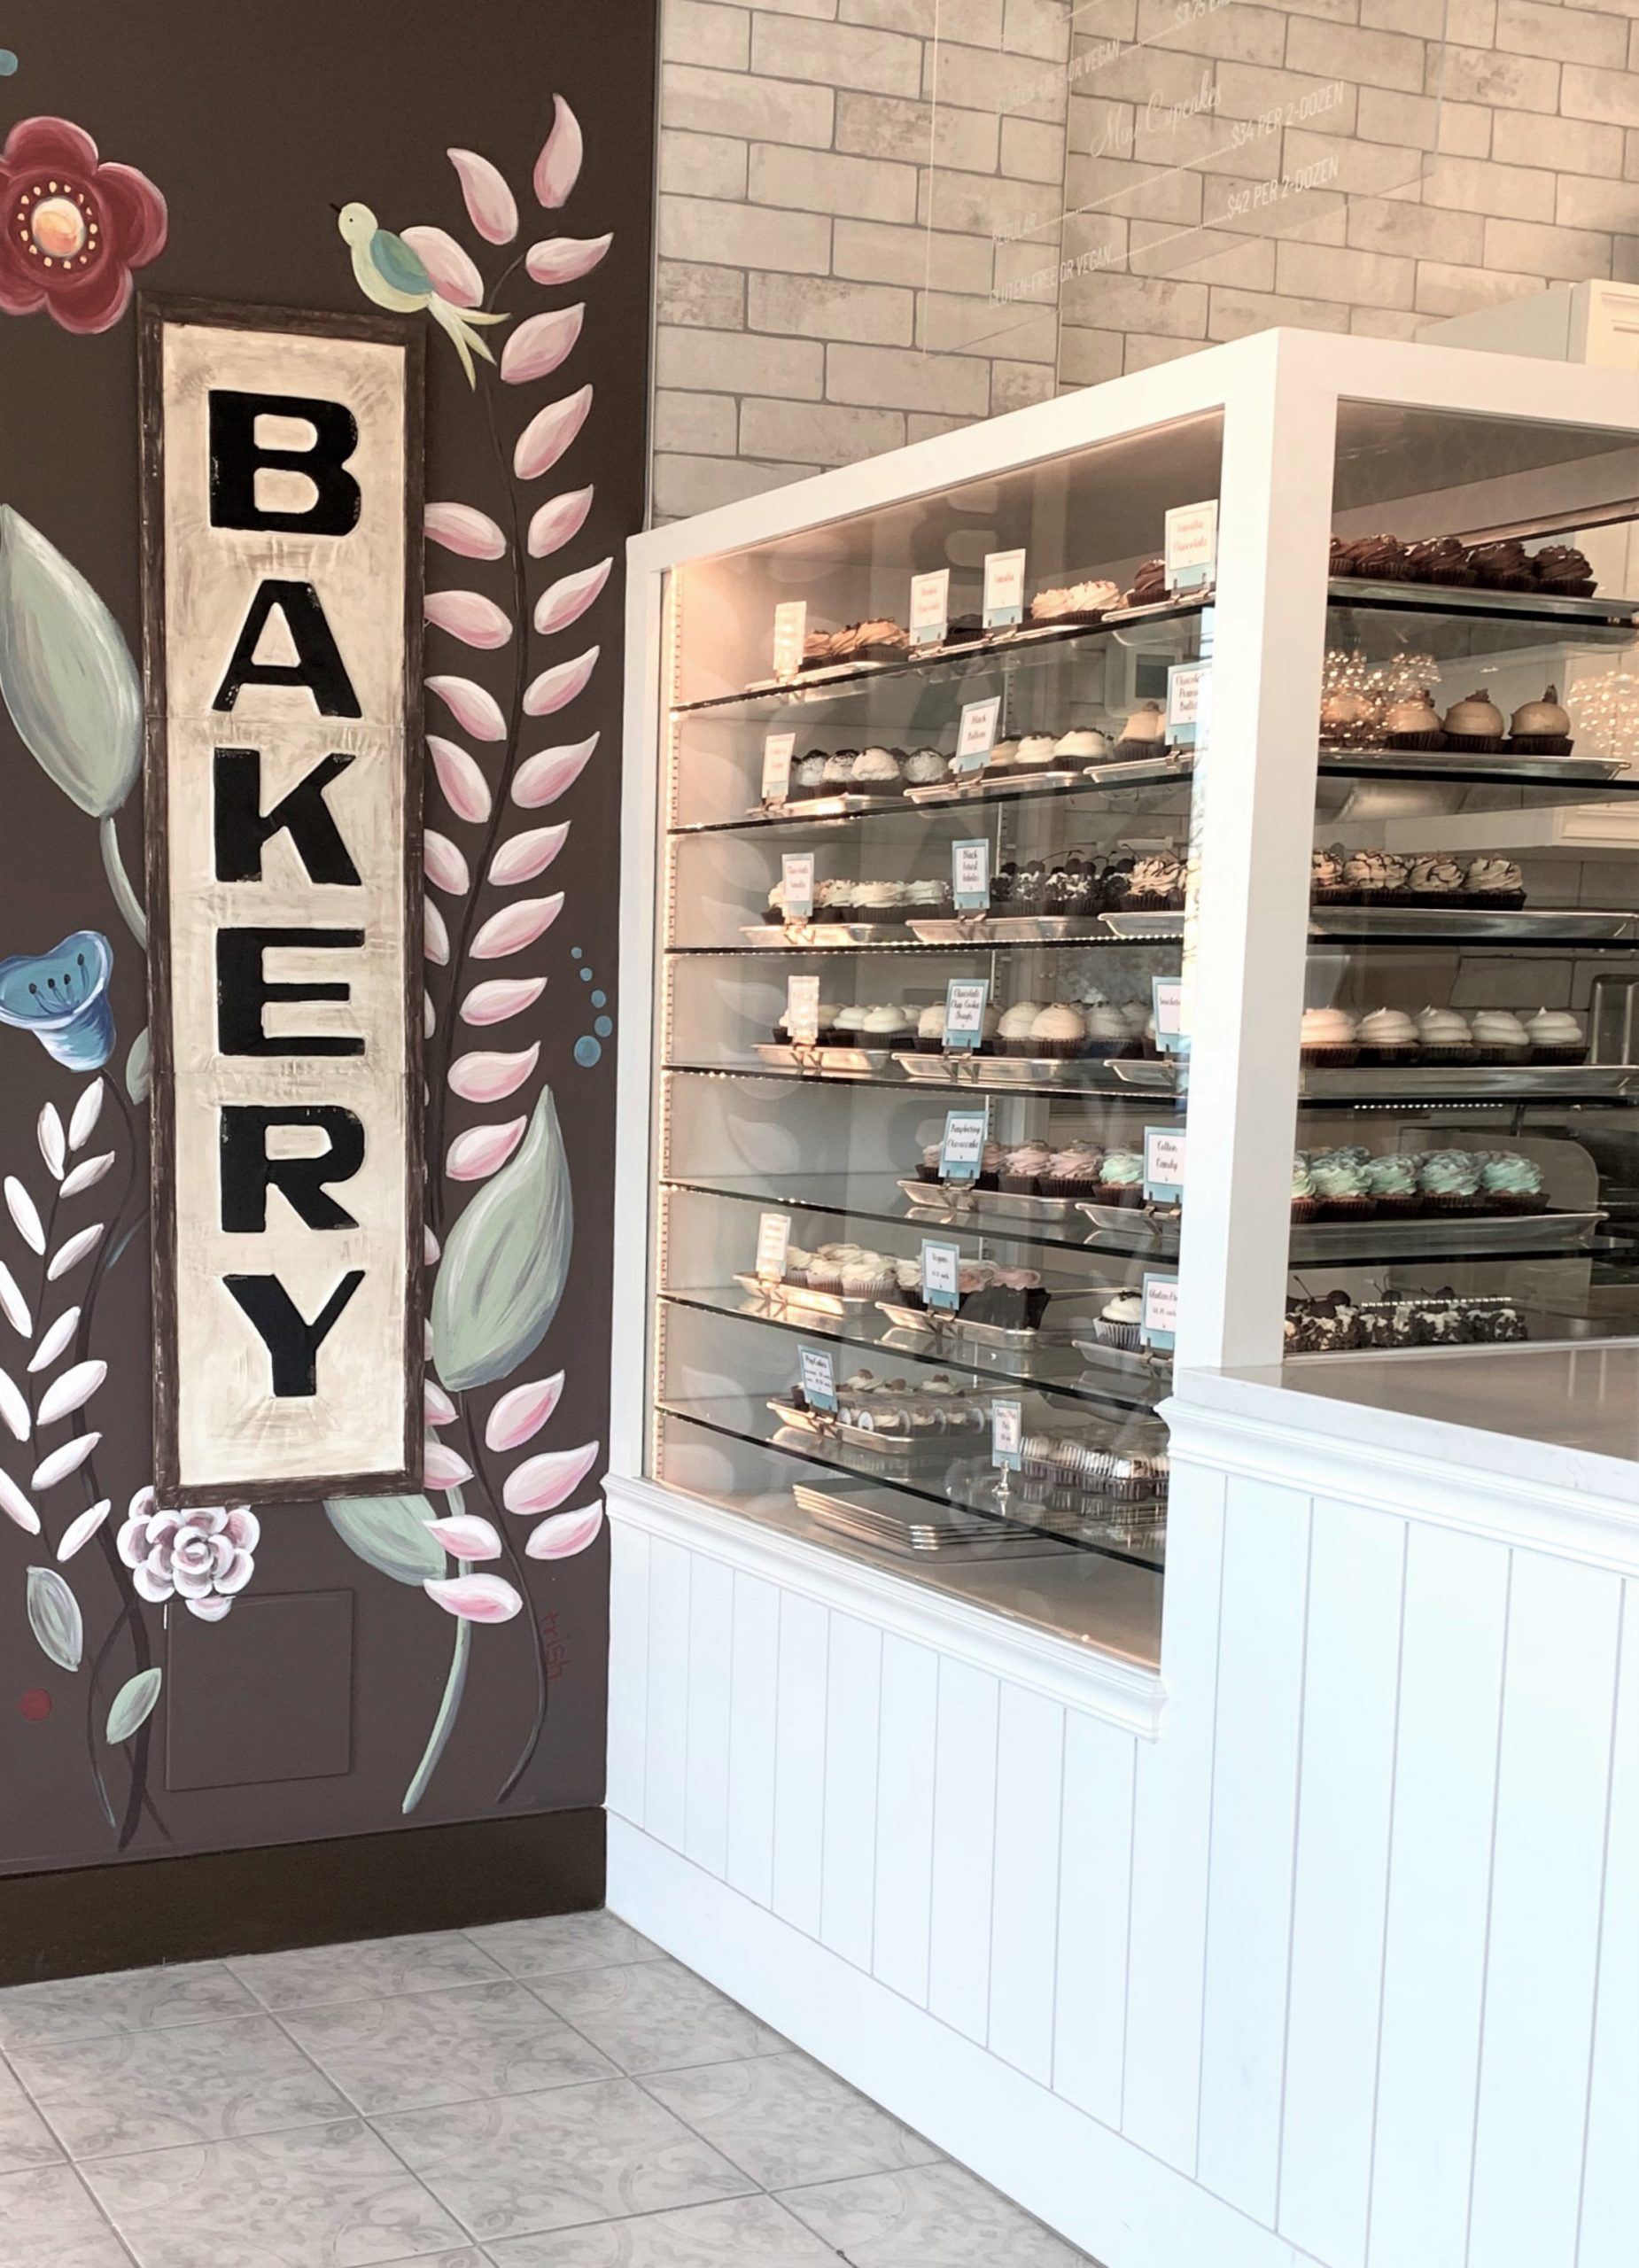 Flavor Cupcakery & Cafe, Bel Air, Maryland